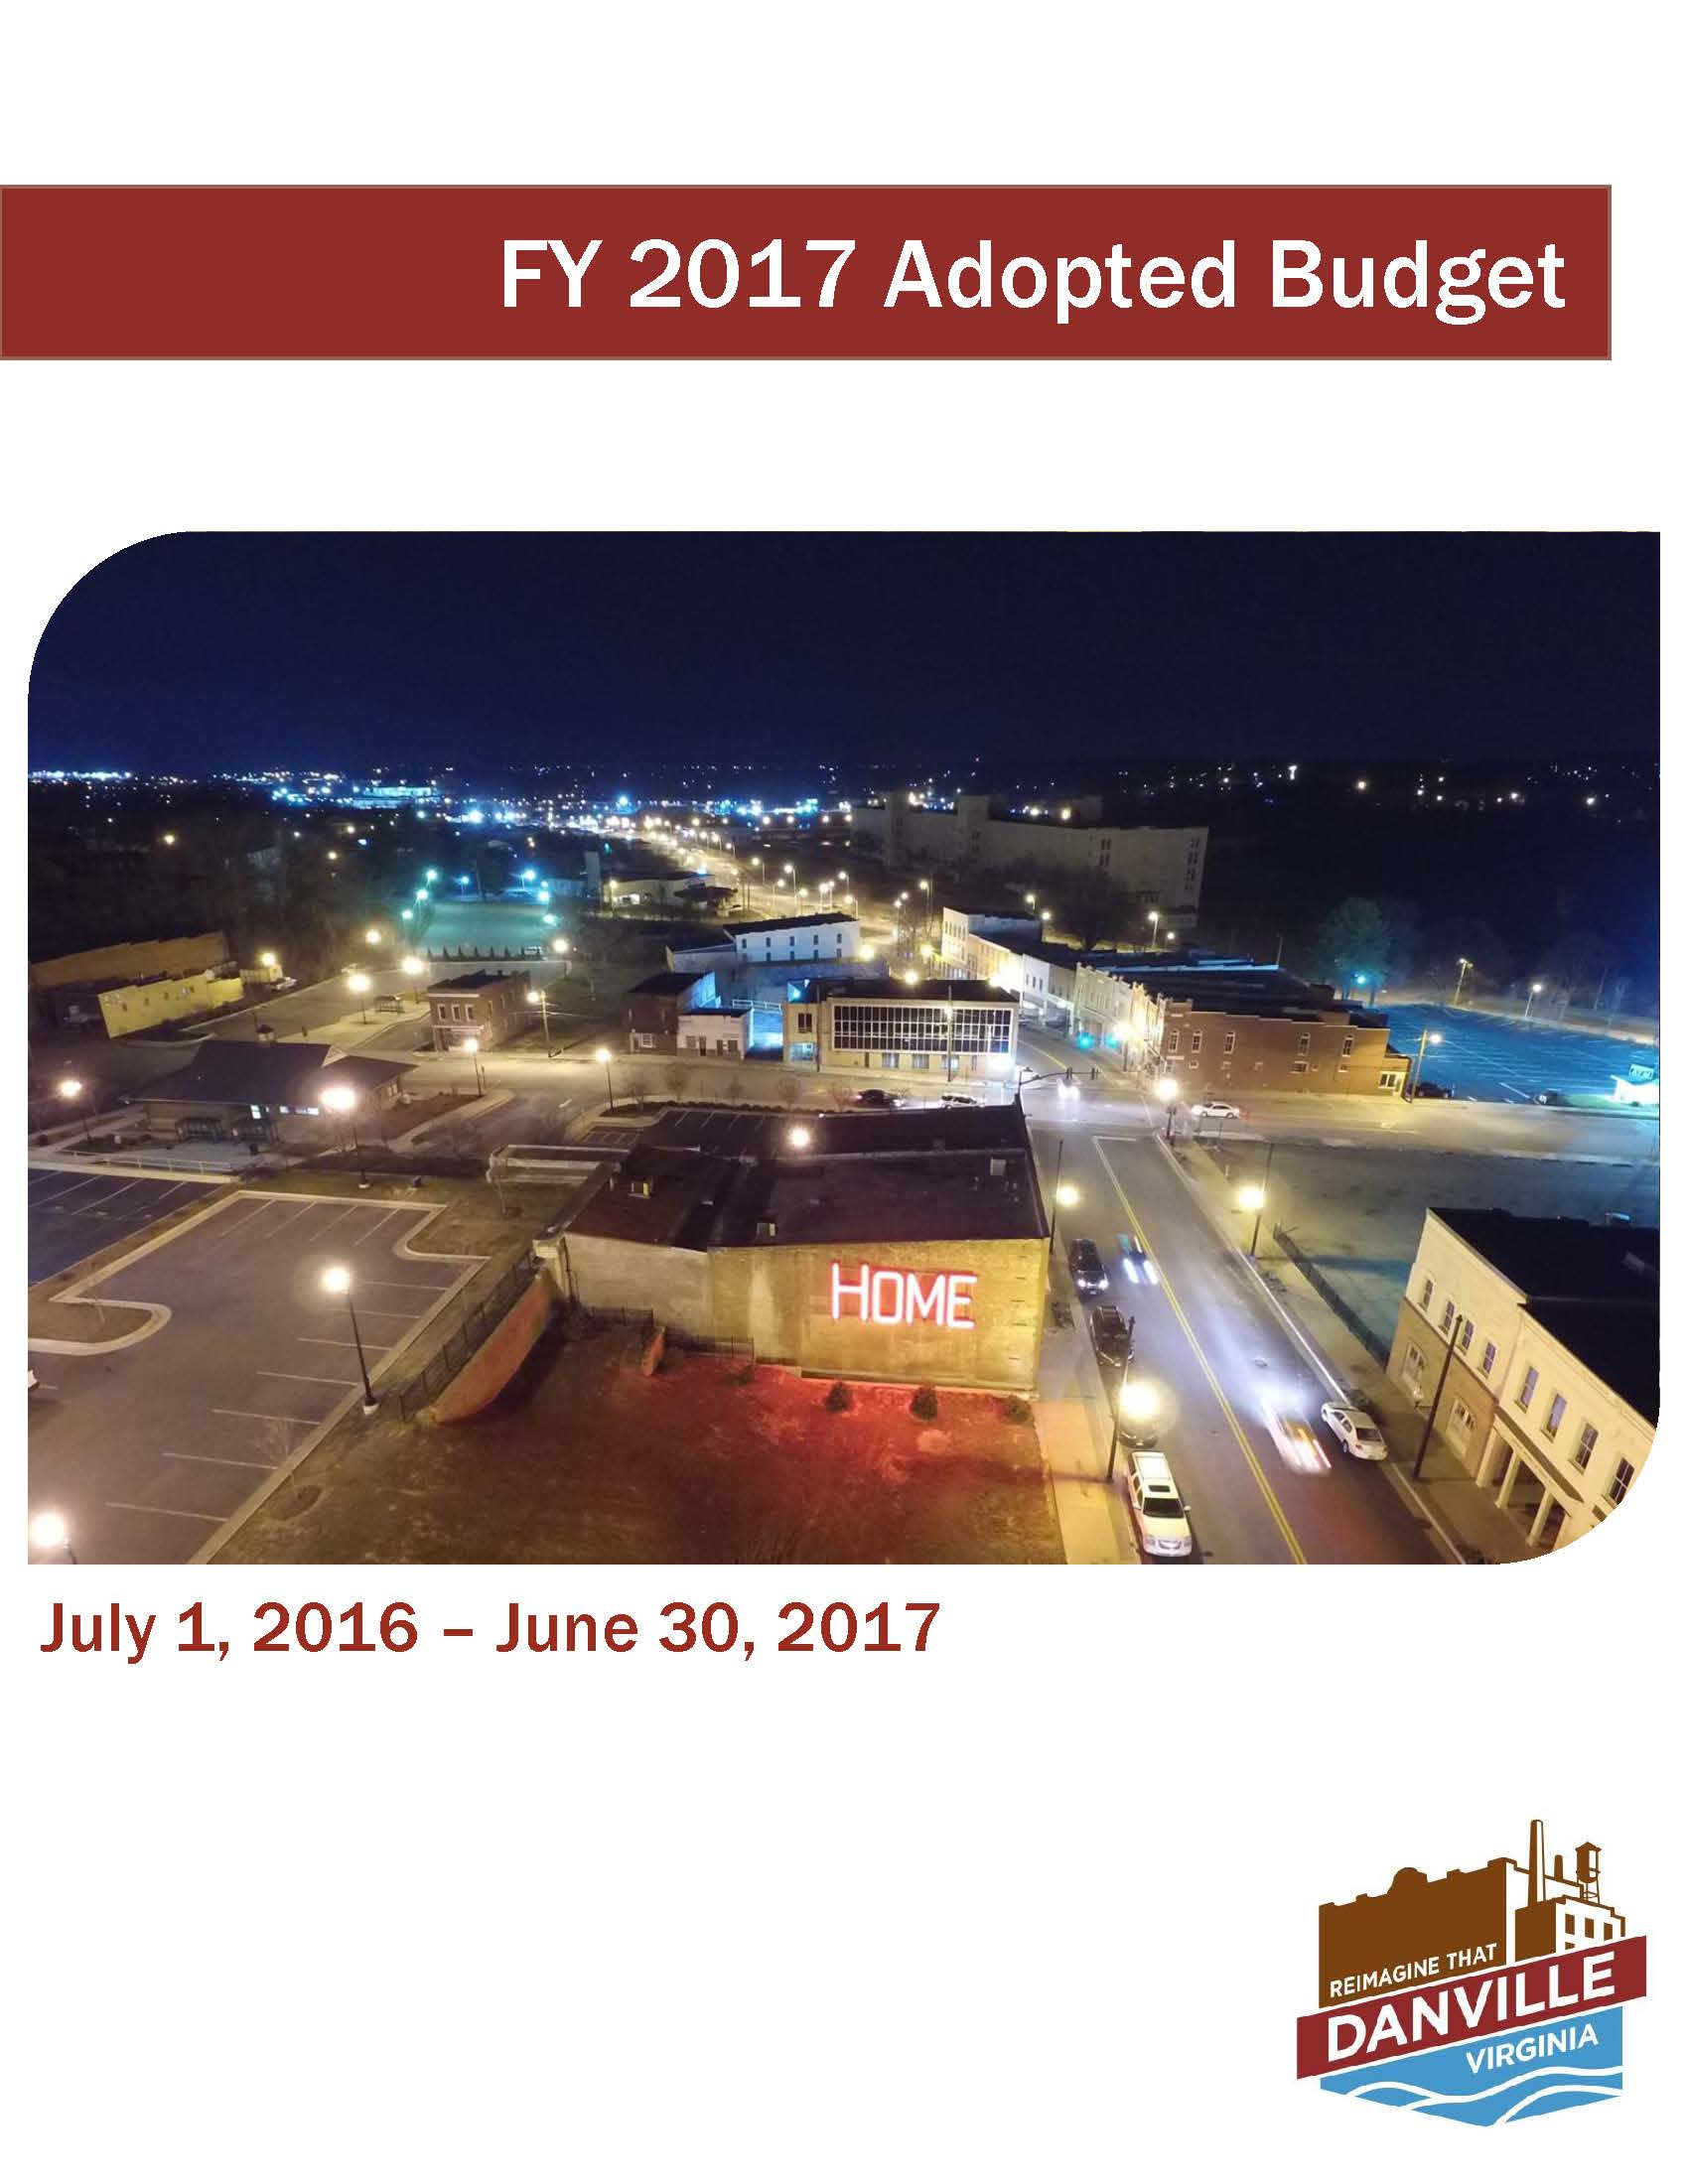 FY 2017 Adopted Budget Cover